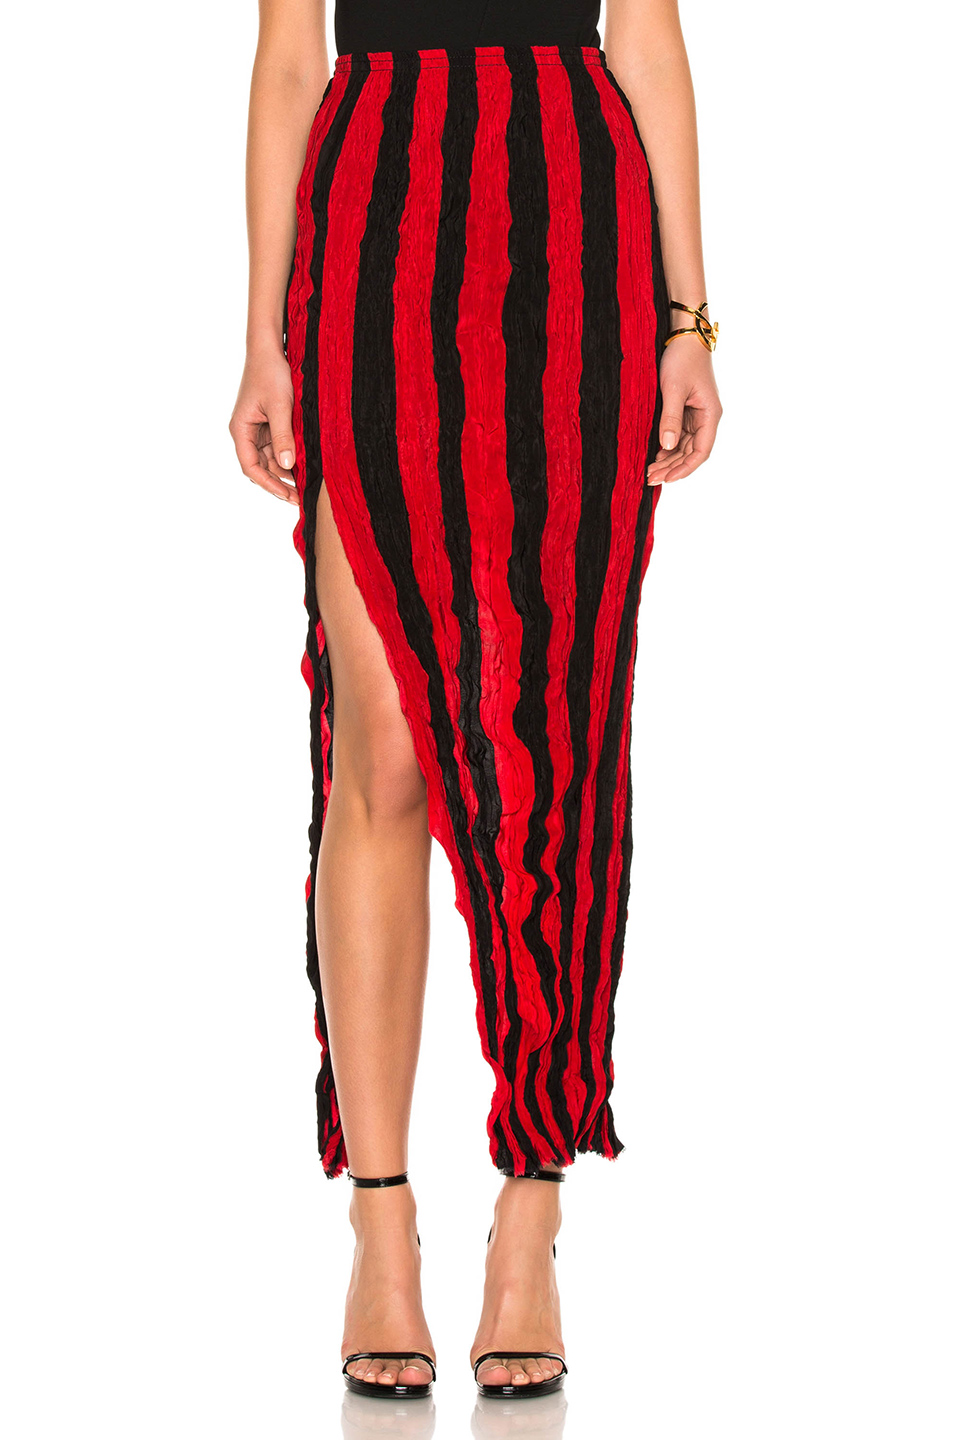 Juan Carlos Obando Crushed Ankle Length Skirt In Red,Stripes